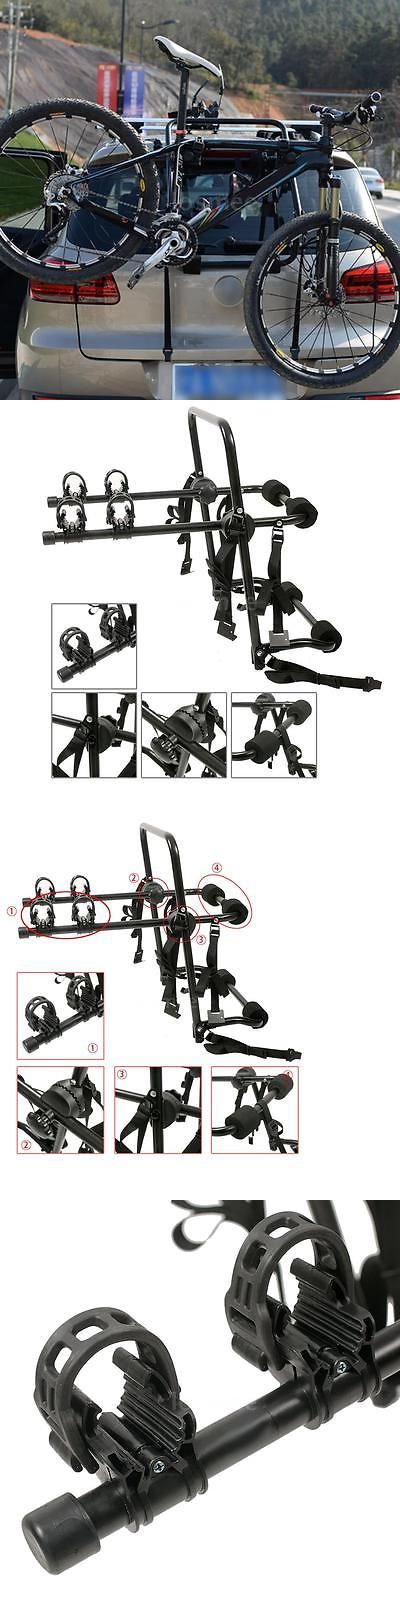 Car and Truck Racks 177849: Bike Trunk-Mount Hatchback Suv Or Car Sport Bicycle Cycling Carrier Rack Hm Q8k2 -> BUY IT NOW ONLY: $37.7 on eBay!